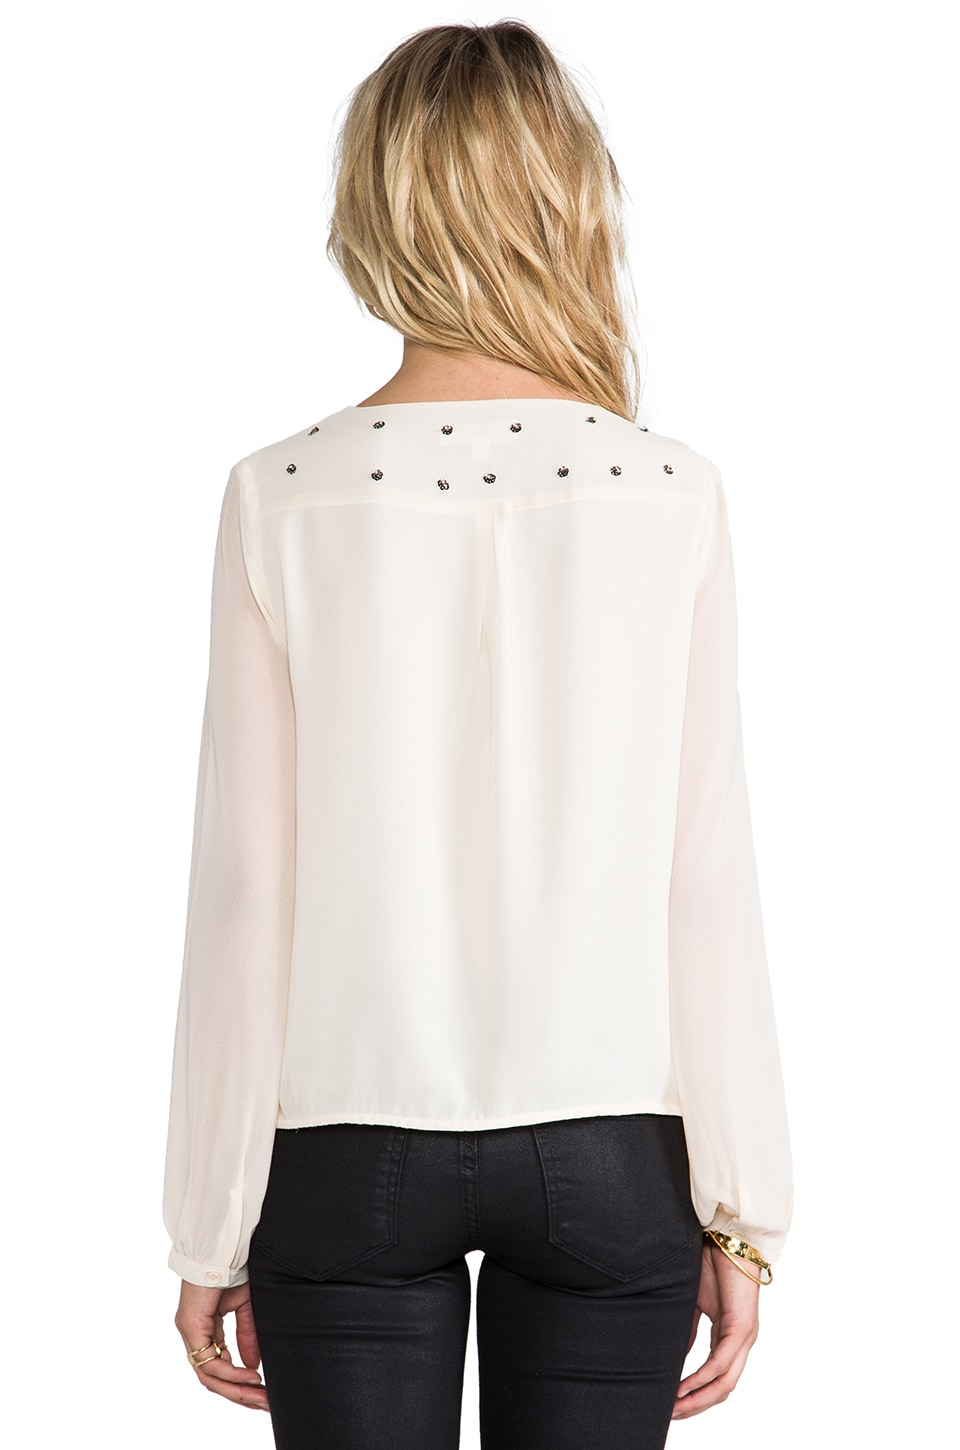 MM Couture by Miss Me Studded Drape Blouse in Beige